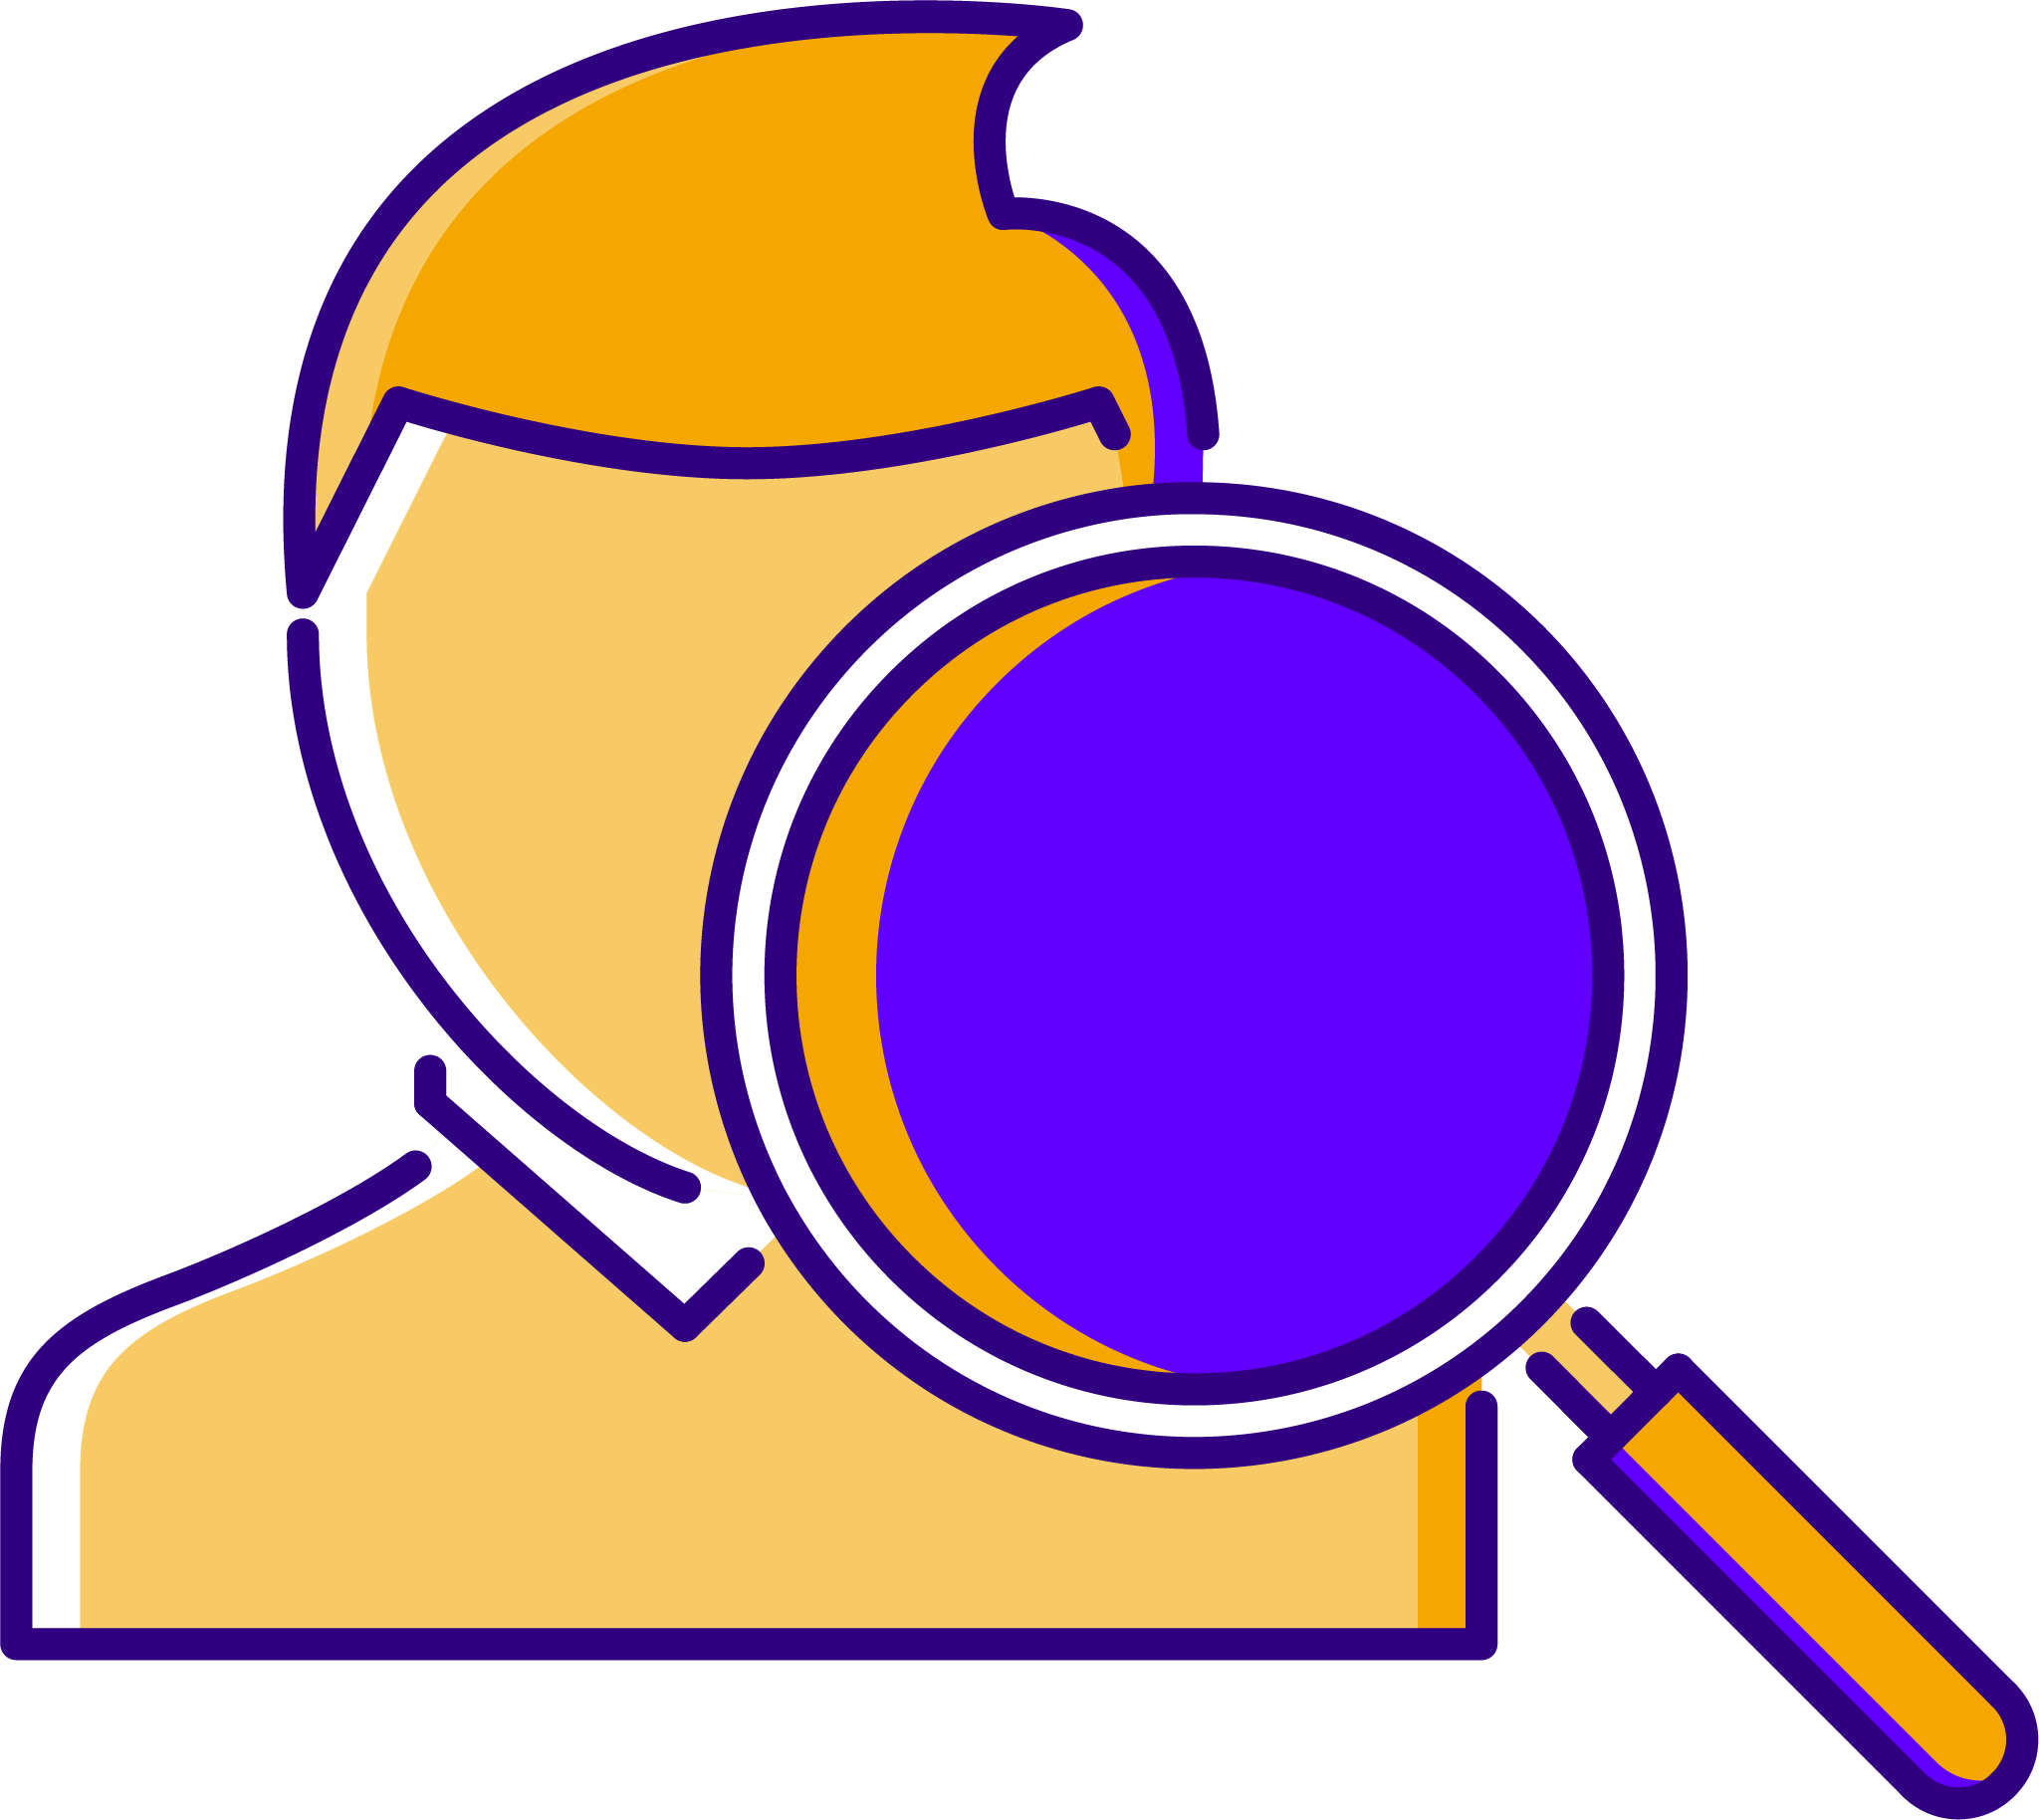 A recruiter with a magnifying glass